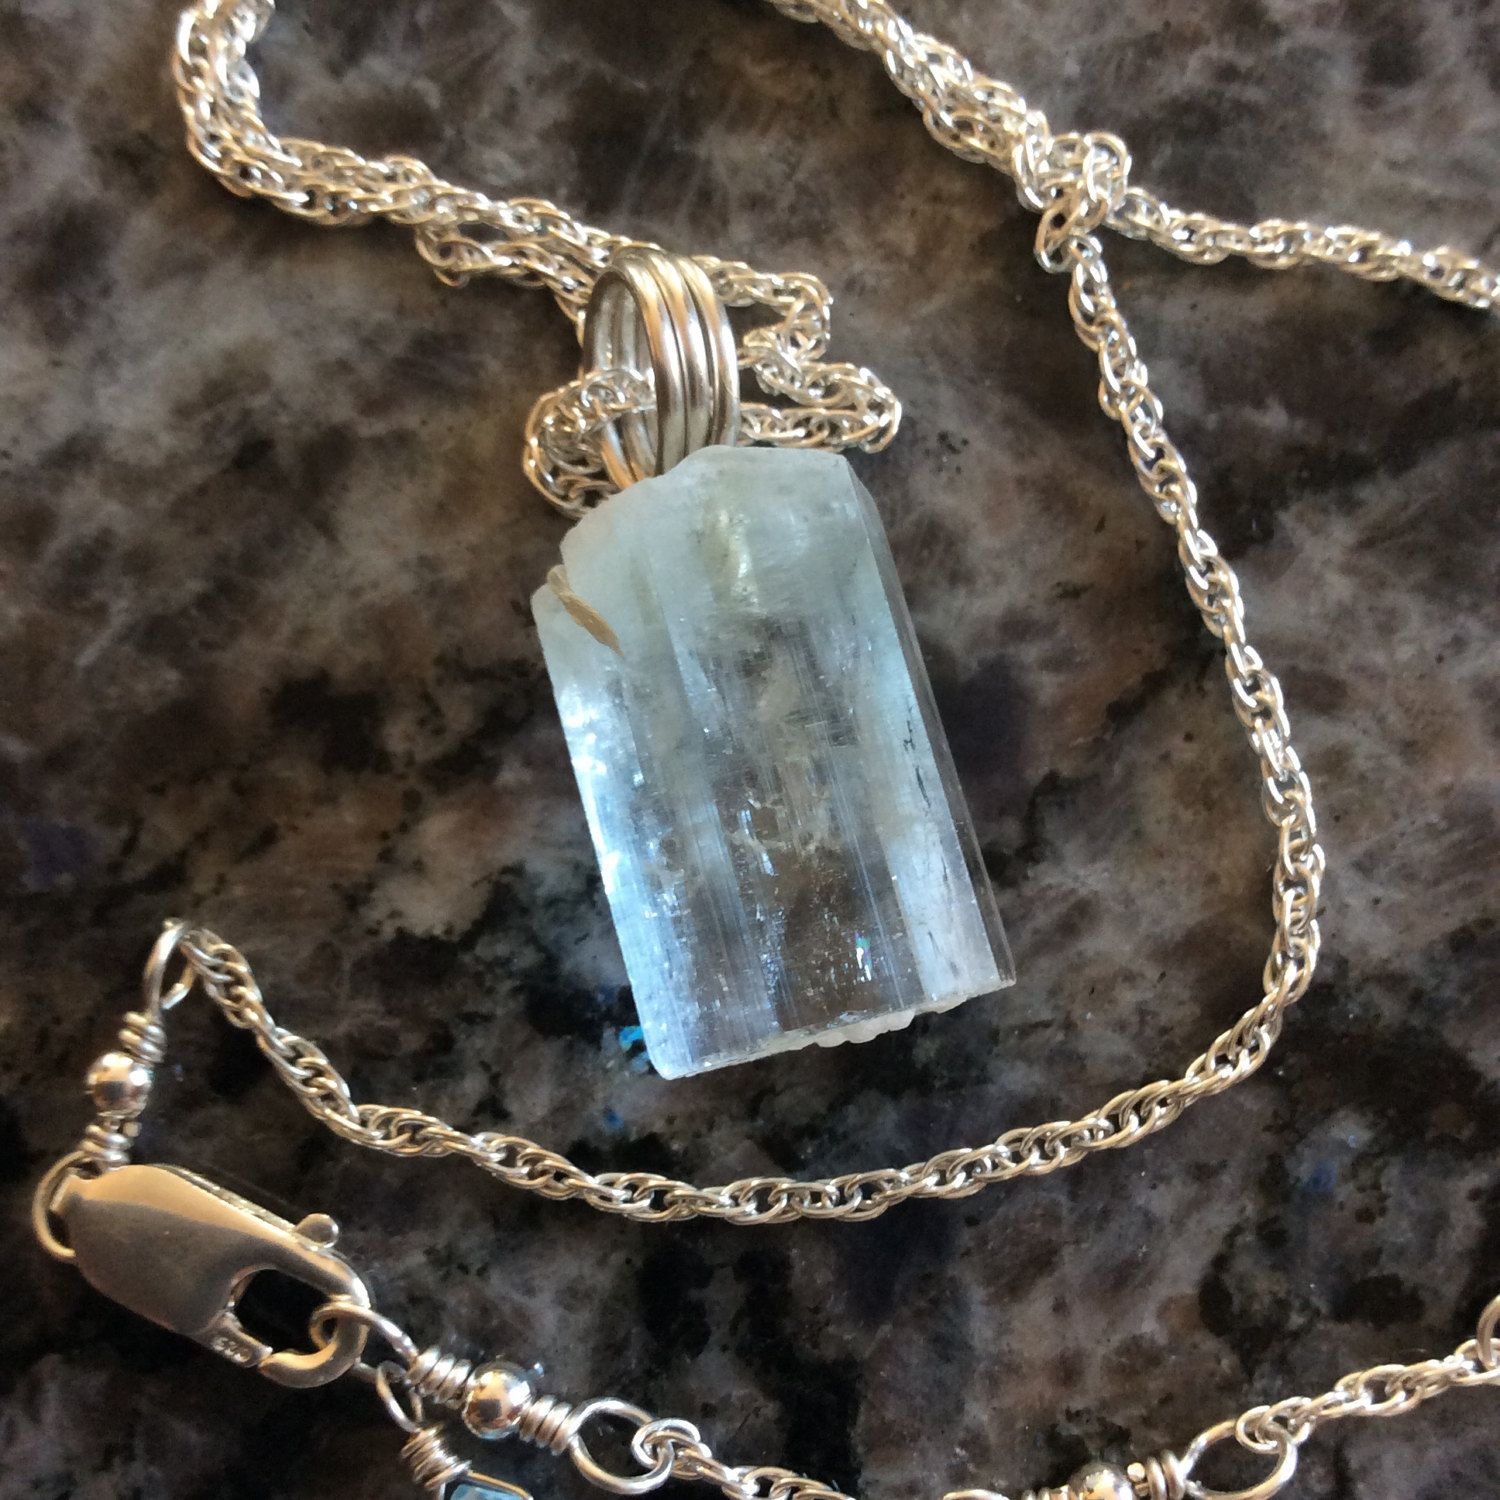 Raw Faceted Aquamarine Necklace 18 Inches